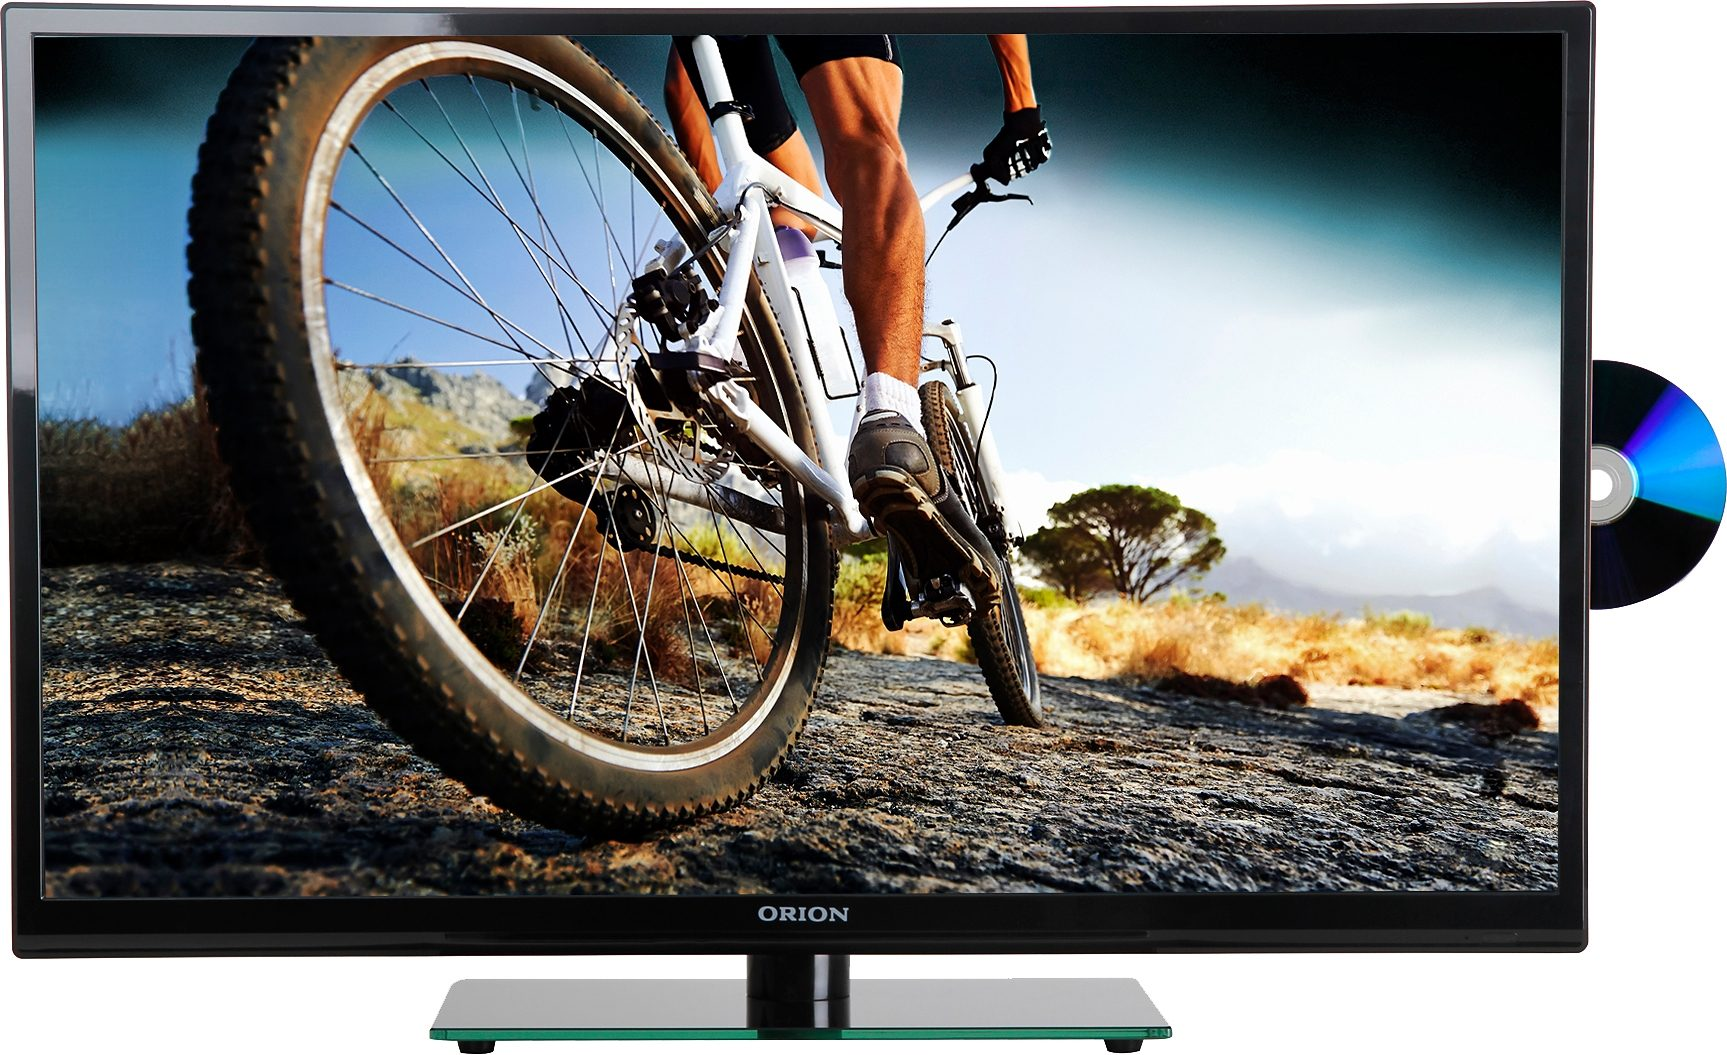 Orion CLB32B880DS , LED Fernseher, 80 cm (32 Zoll), HD-ready 720p